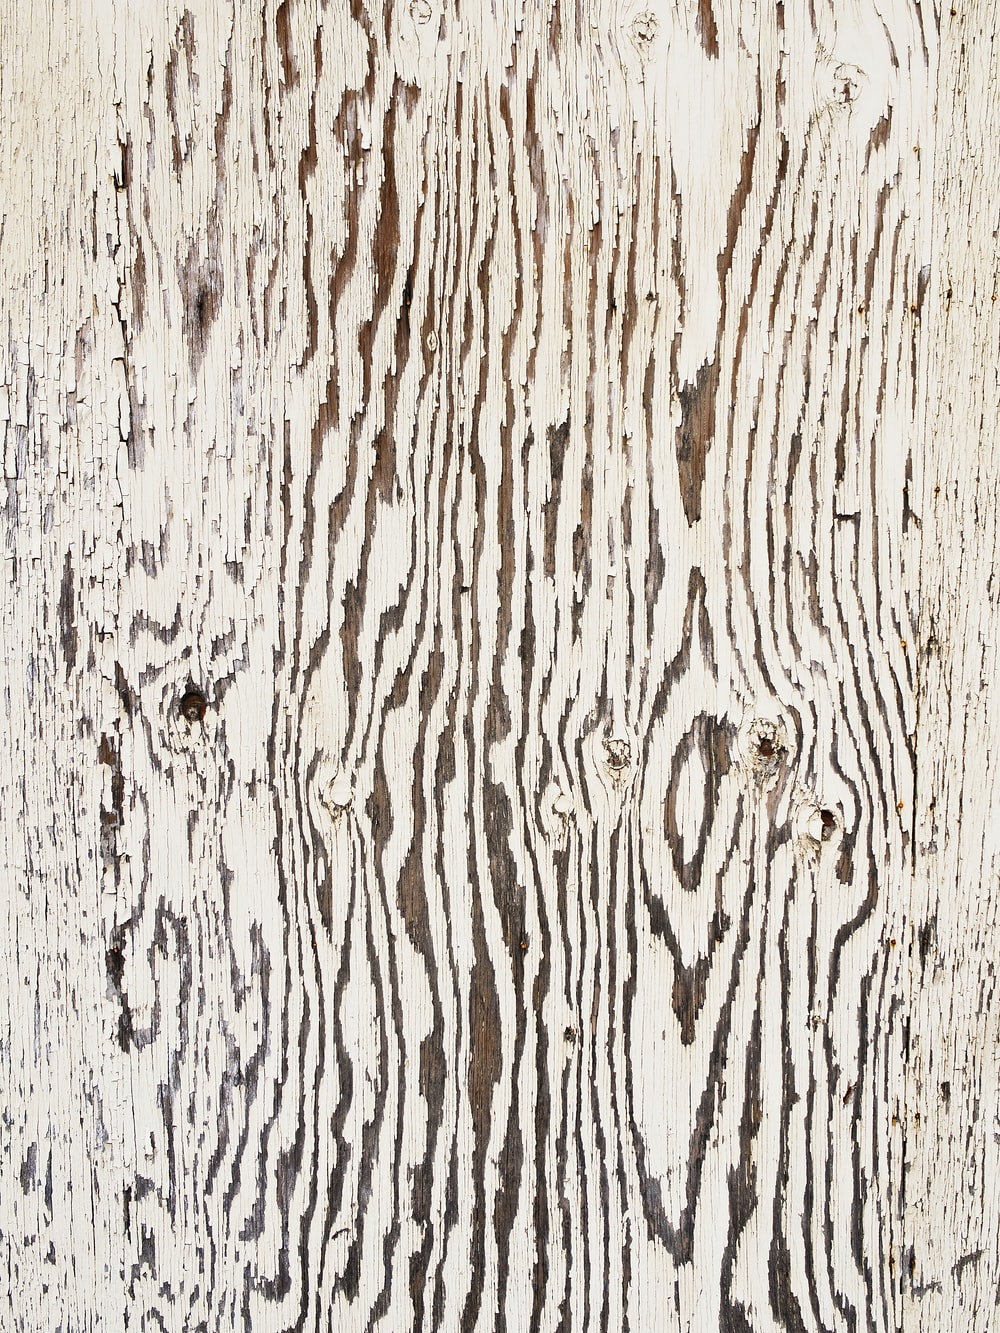 close up photography of brown wooden surface